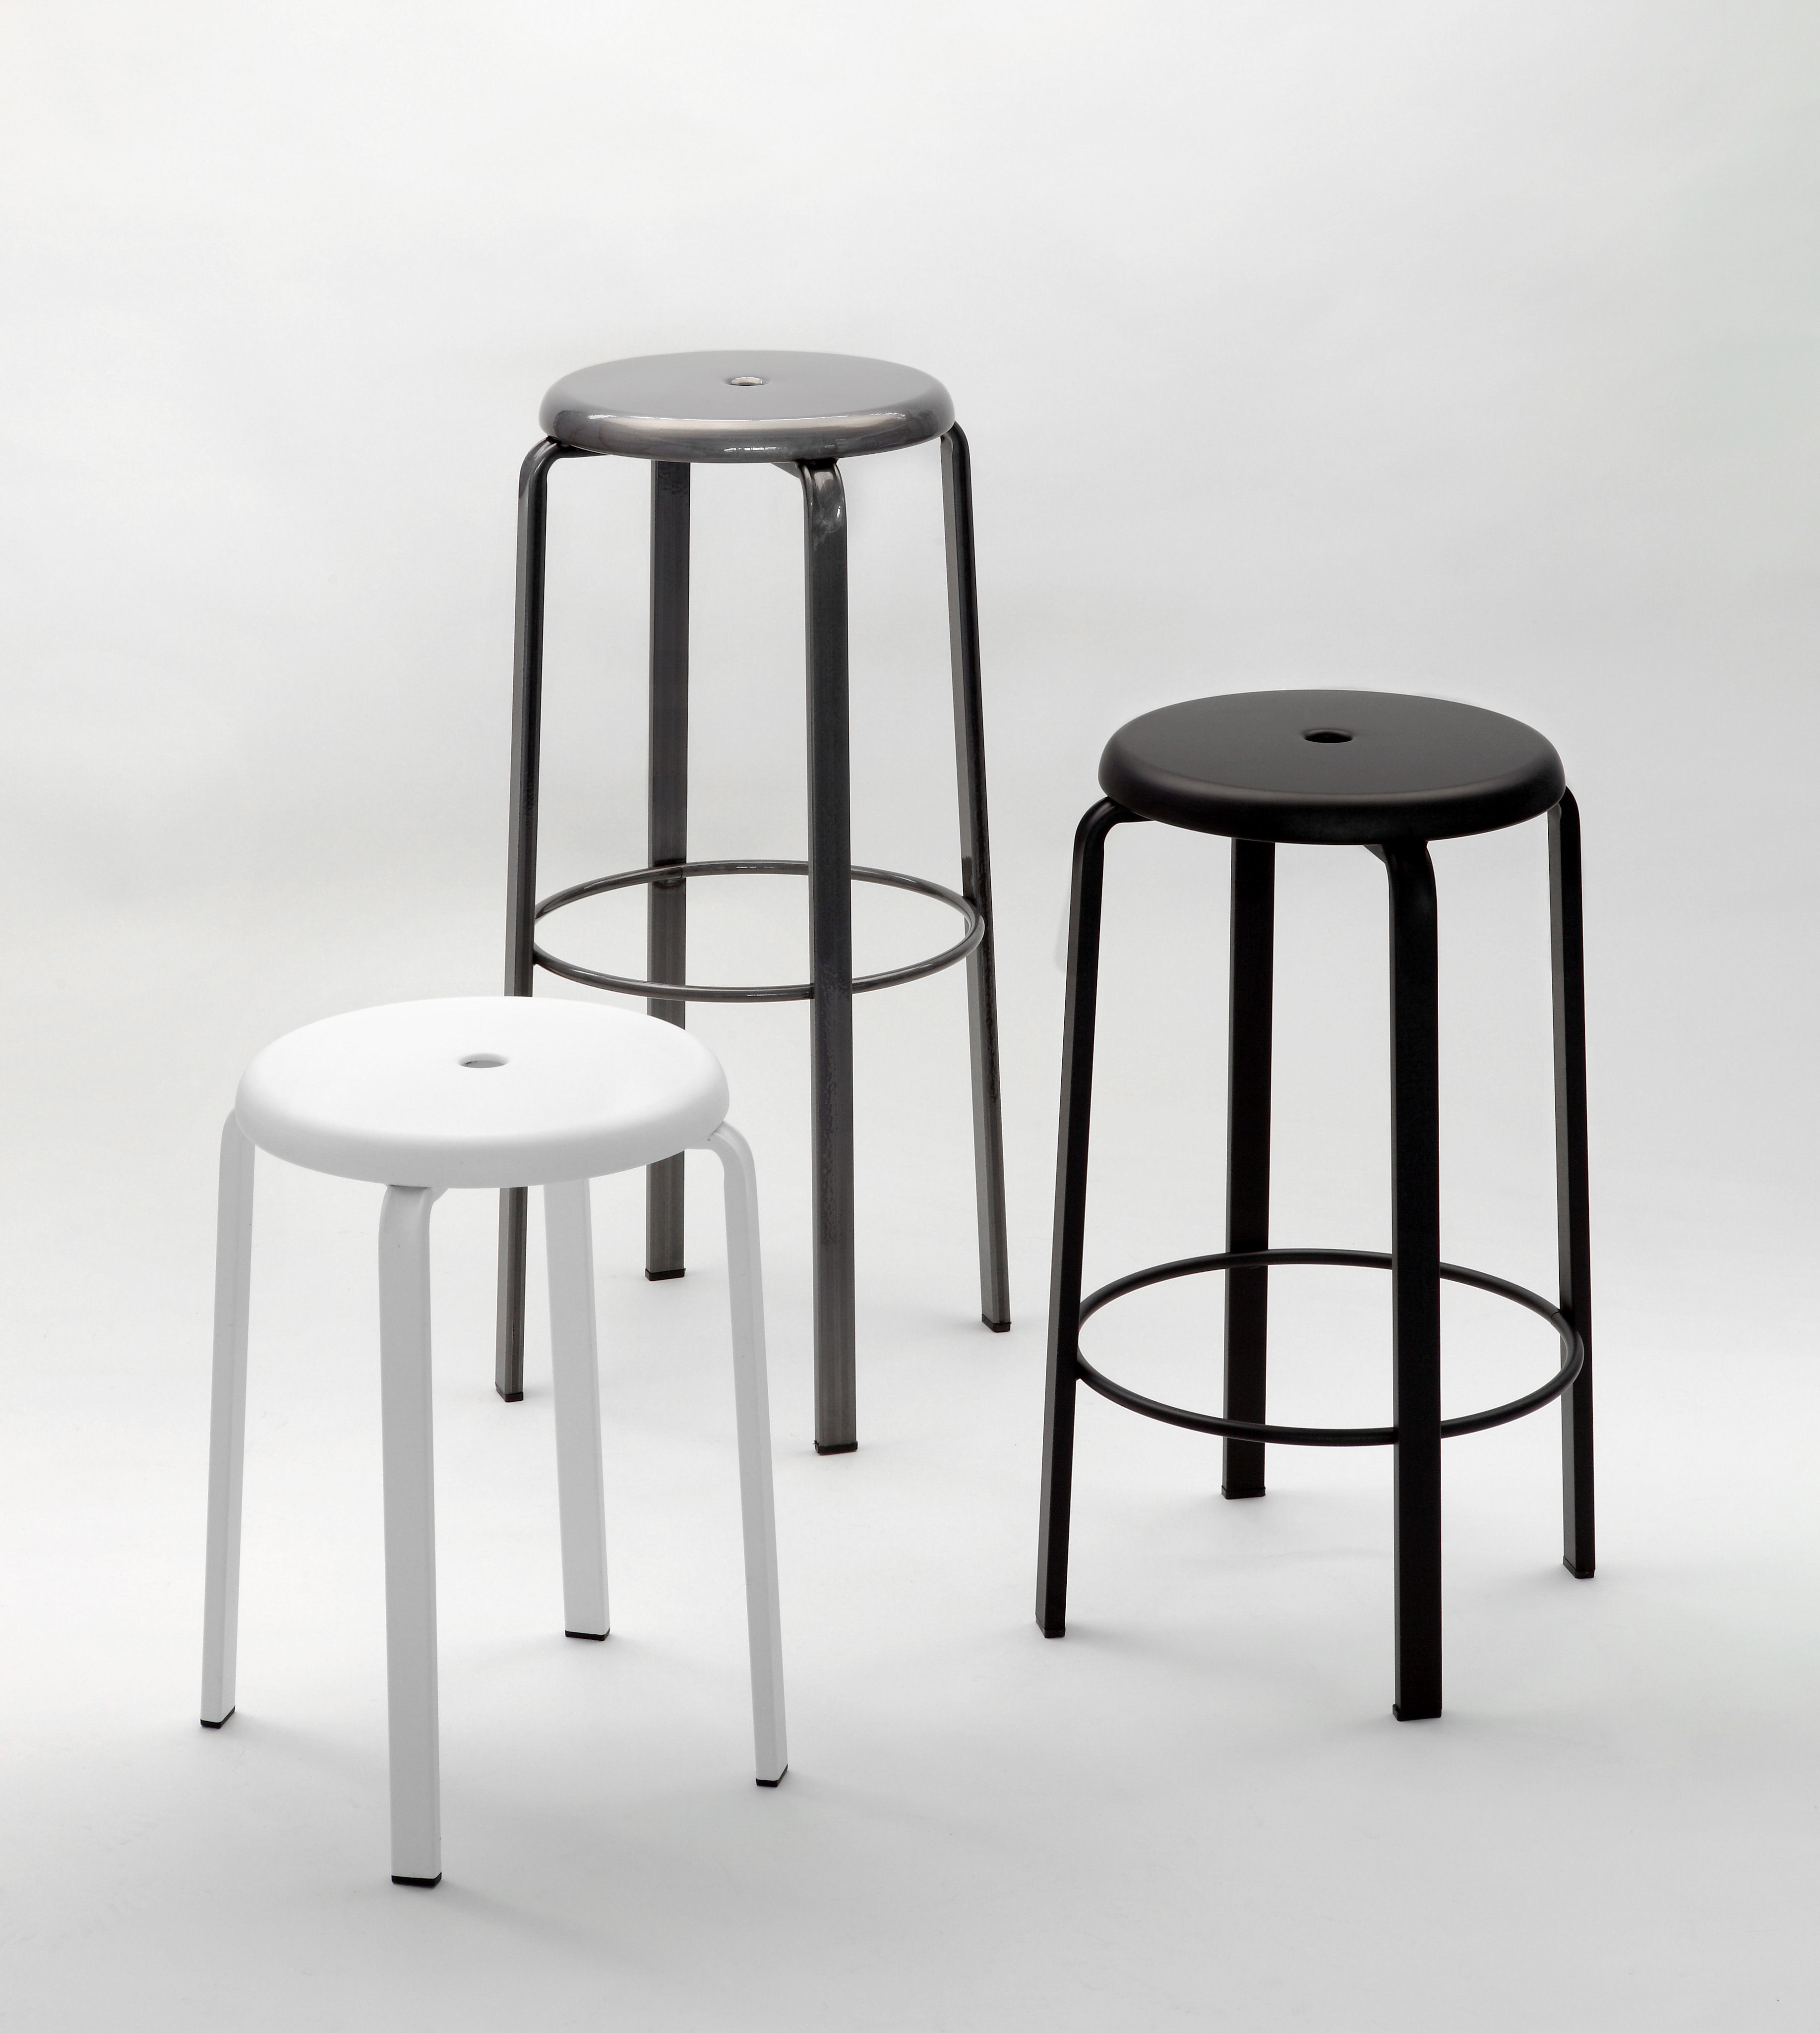 tabouret de bar demian h 65 cm m tal noir zeus. Black Bedroom Furniture Sets. Home Design Ideas